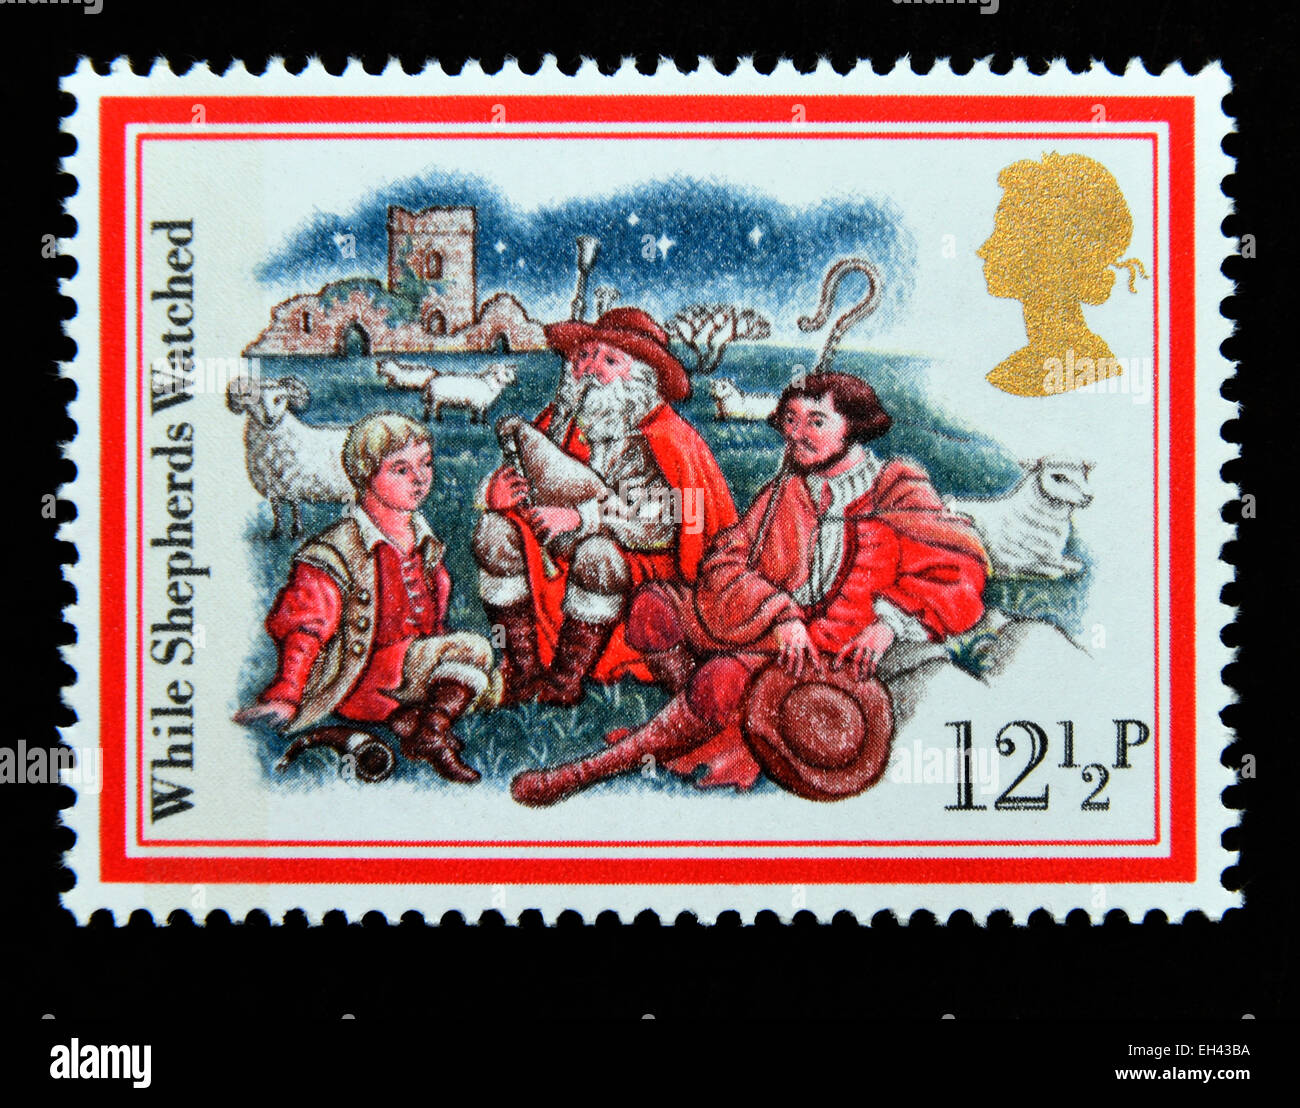 Postage stamp. Great Britain. Queen Elizabeth II. 1982. Christmas Carols 'While Shepherds Watched'. - Stock Image